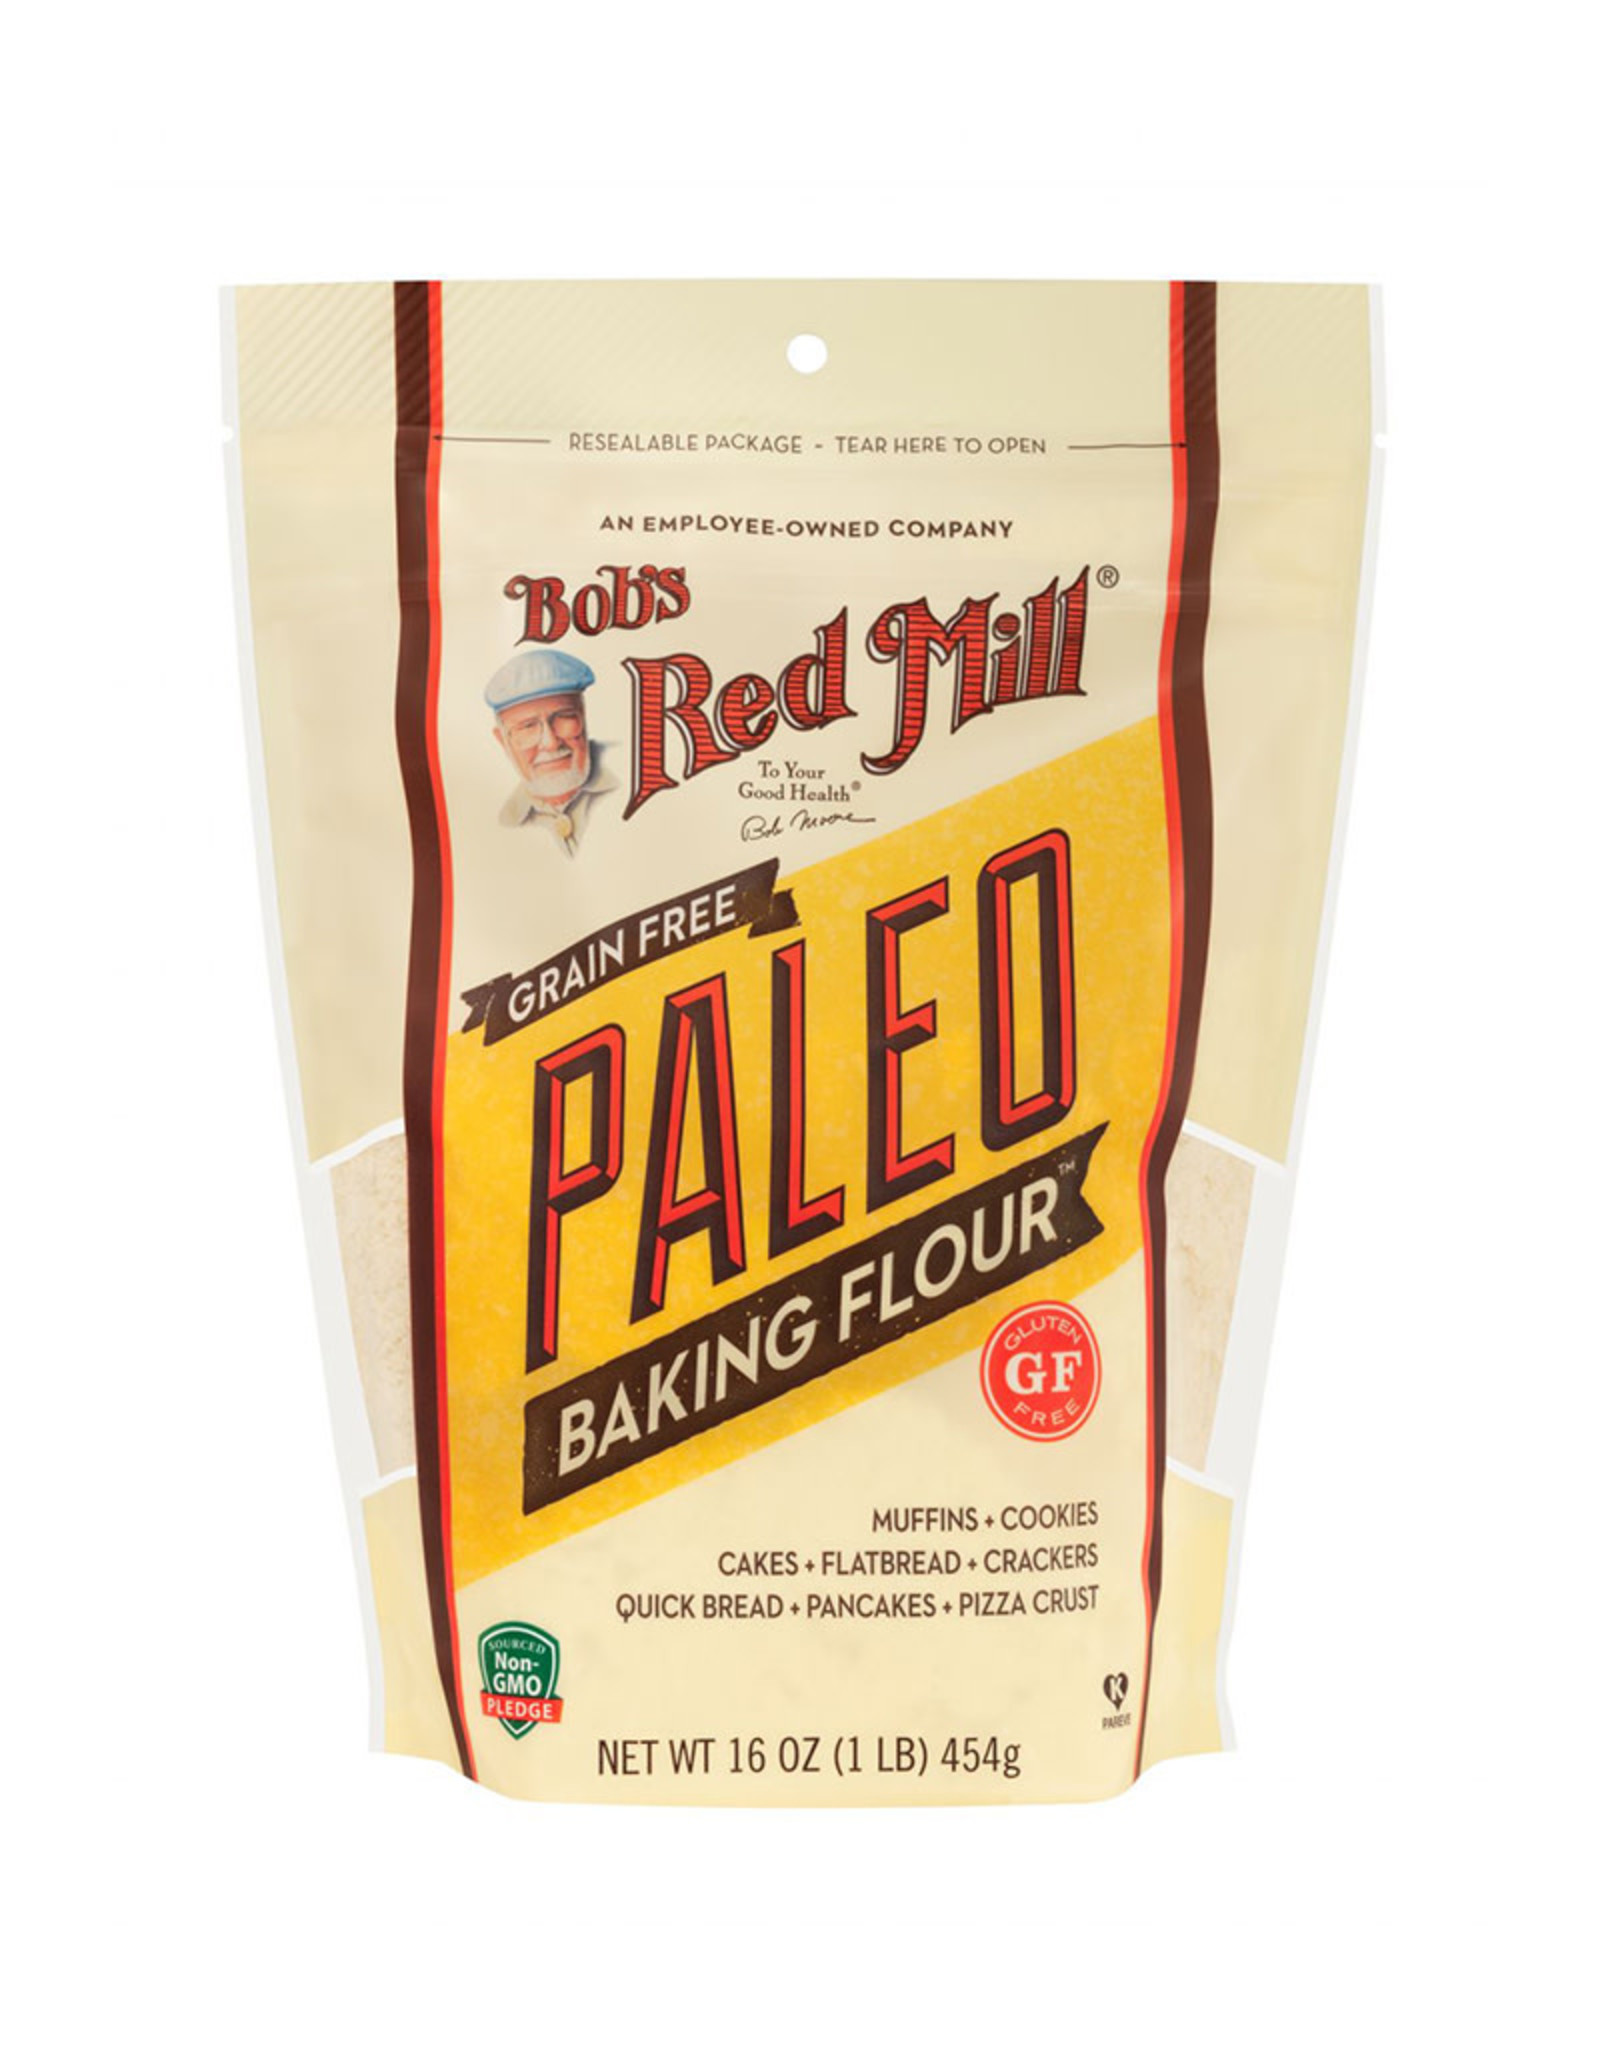 Bob's Red Mill Bobs Red Mill - Paleo Baking Flour (454g)